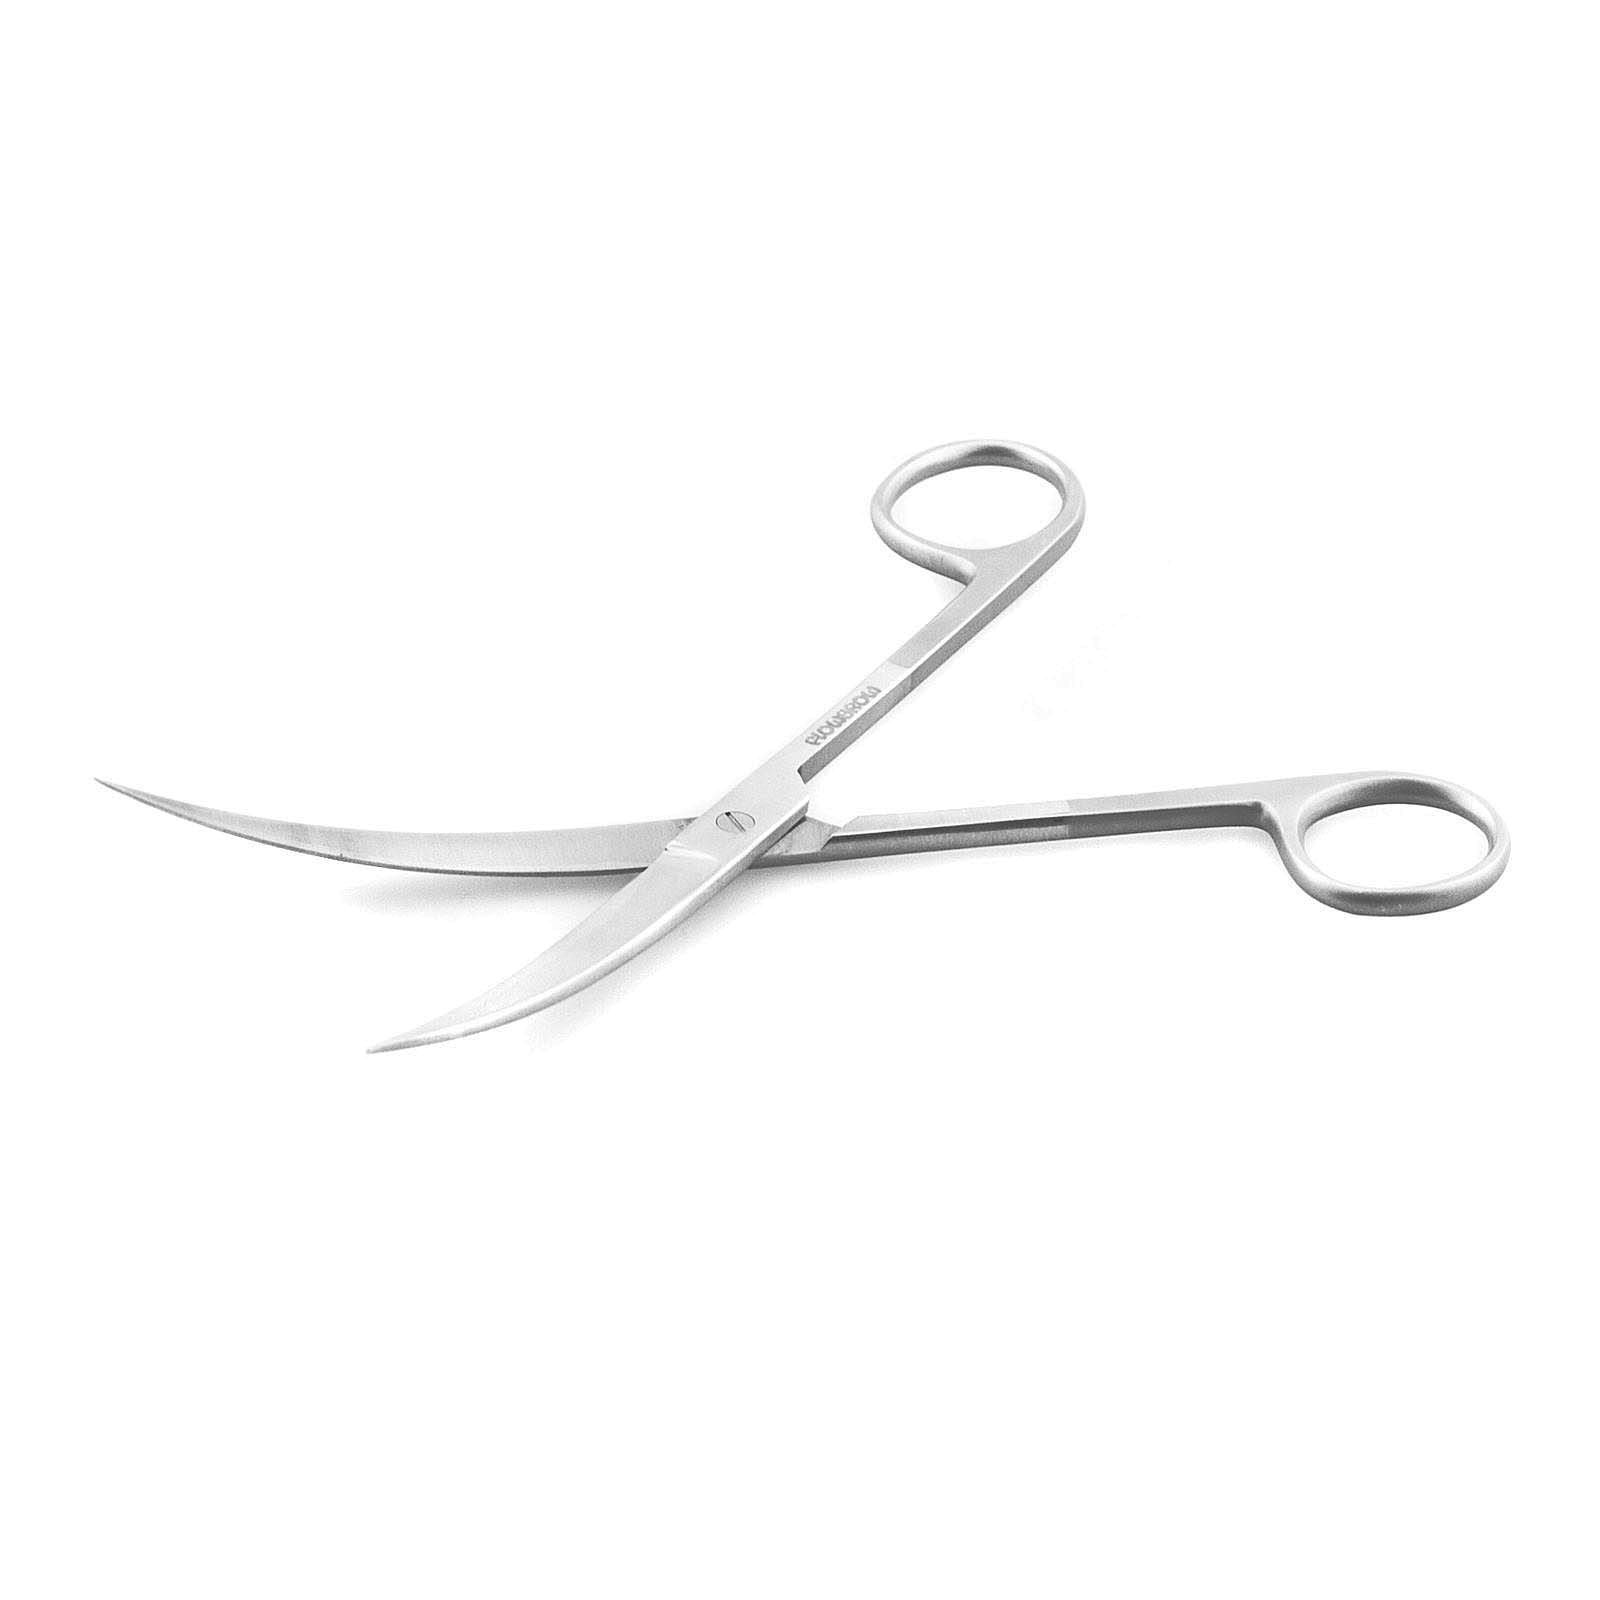 Flowgrow - Short Scissors - gebogen - 16,8 cm